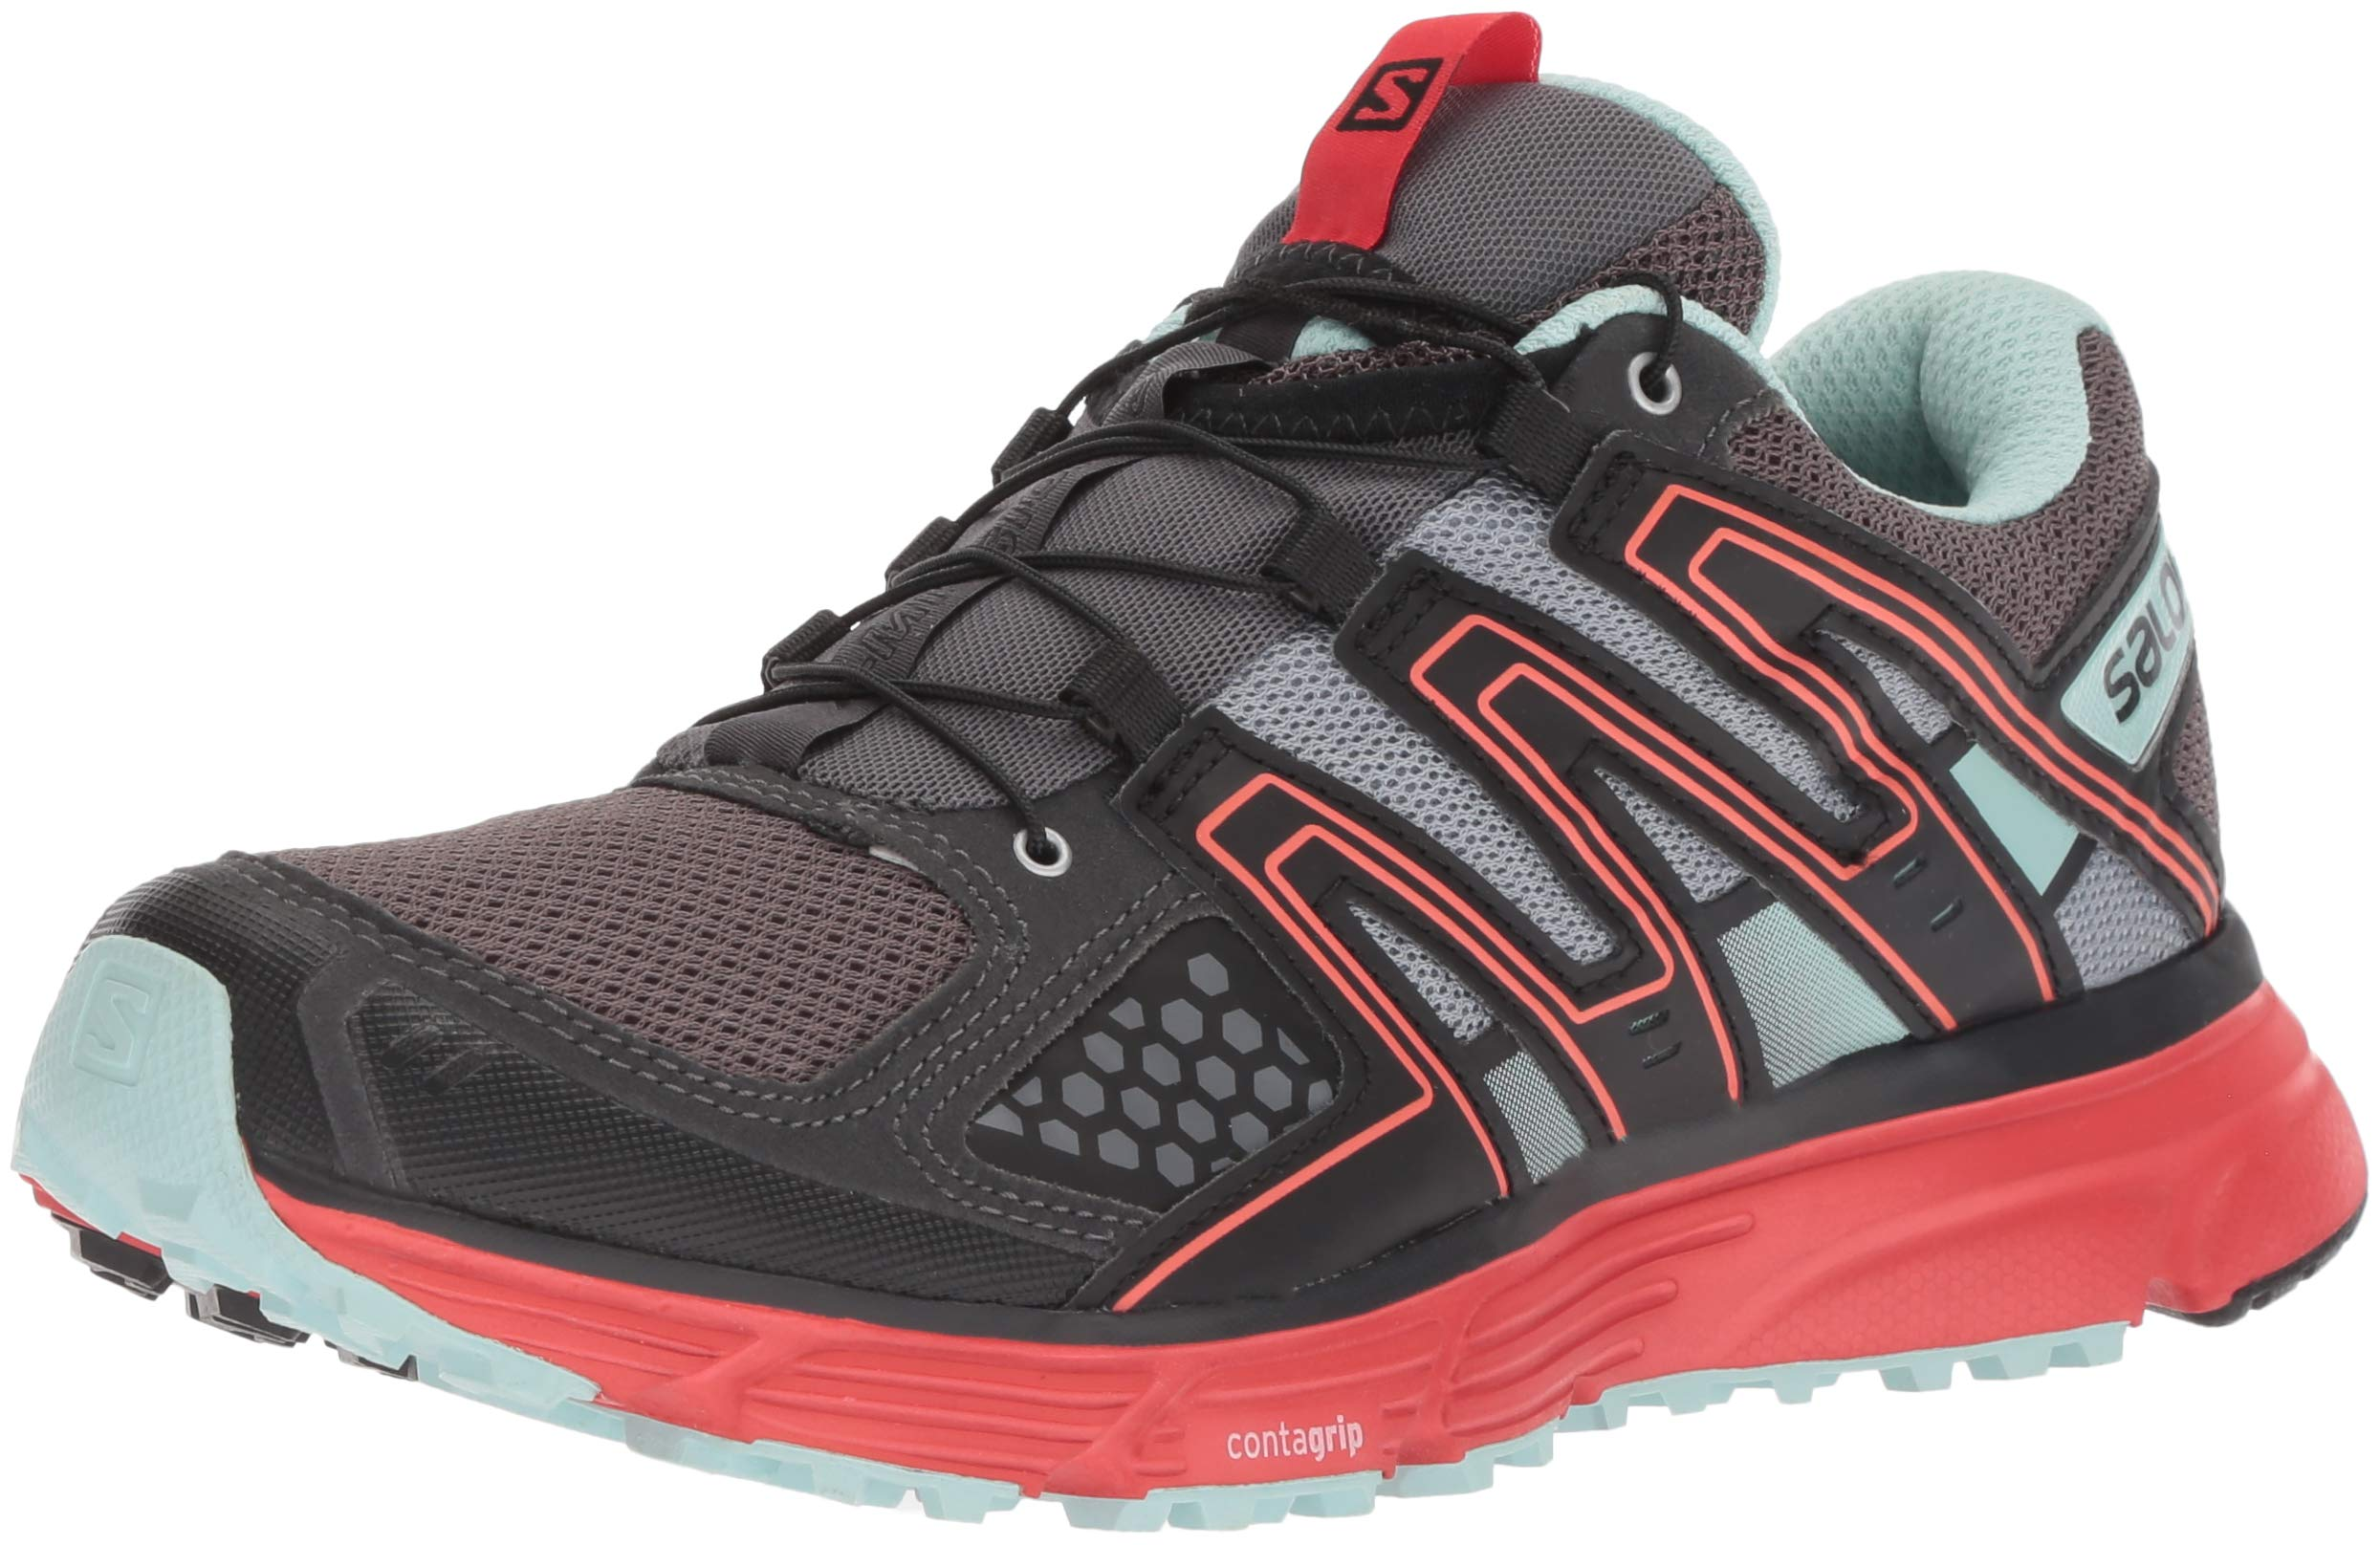 a942988a2c02 Galleon - Salomon Women s X-Mission 3 W Trail Running Shoe